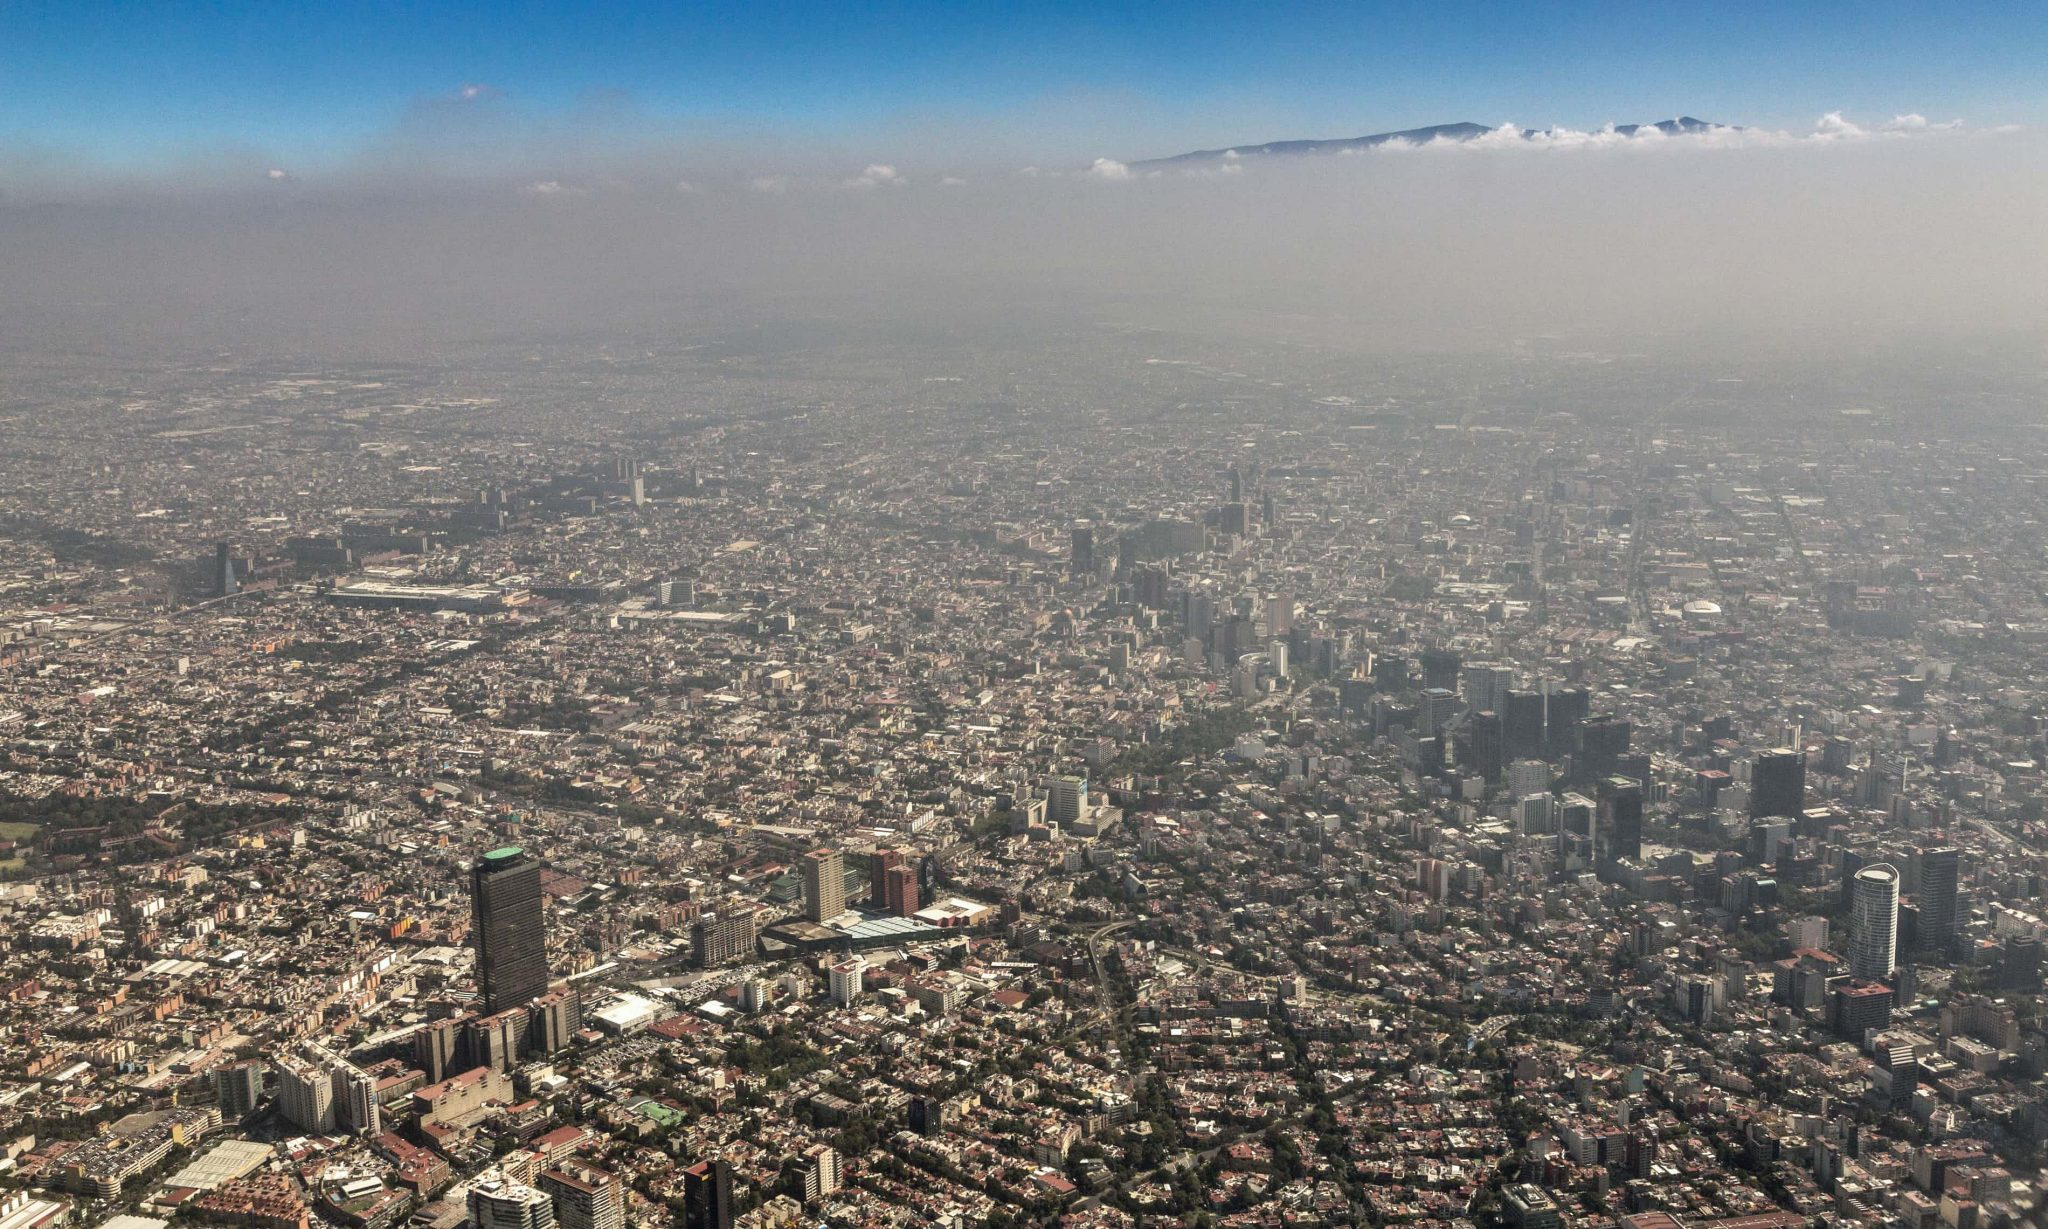 The 100 Million City : Is 21st Century Urbanisation Out Of Control?